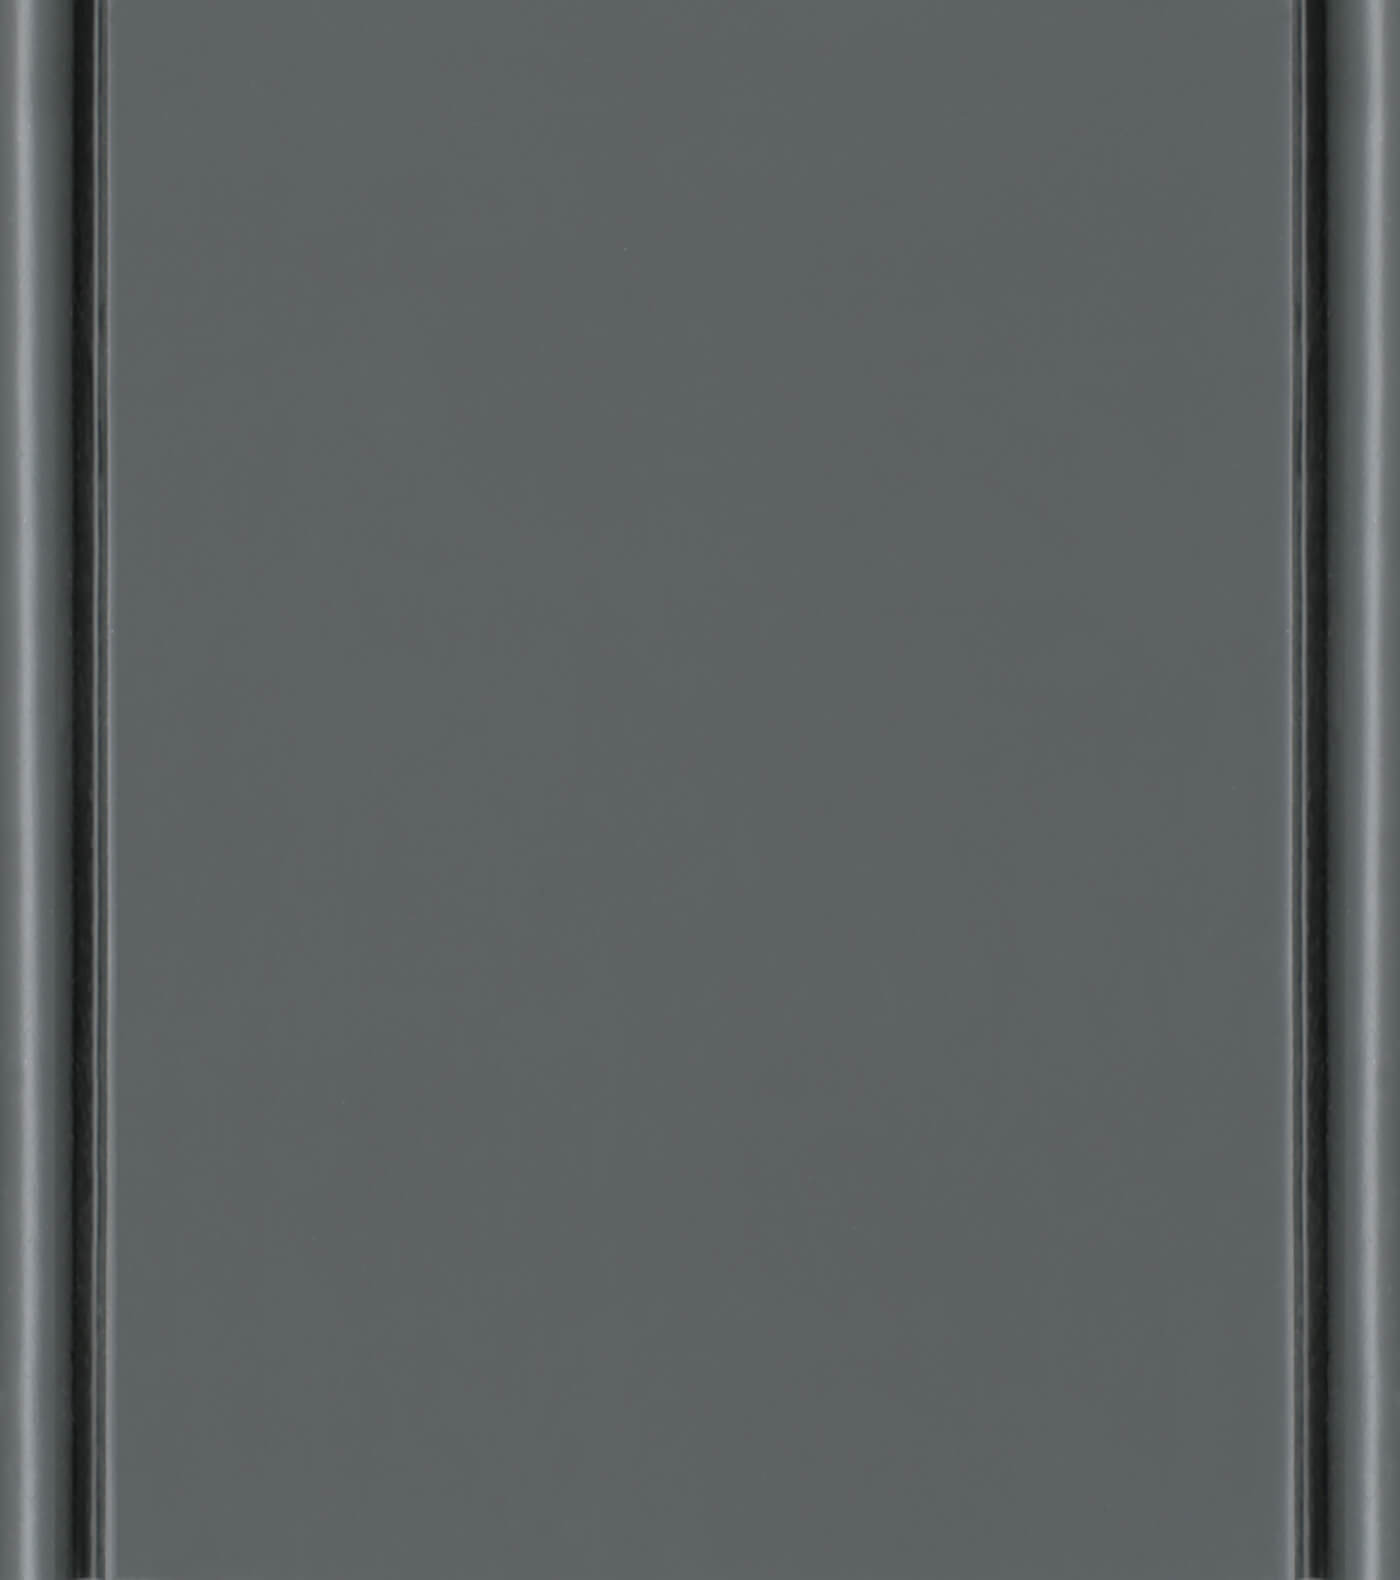 Storm Gray / Slate Paint / Accent Finish on Paintable